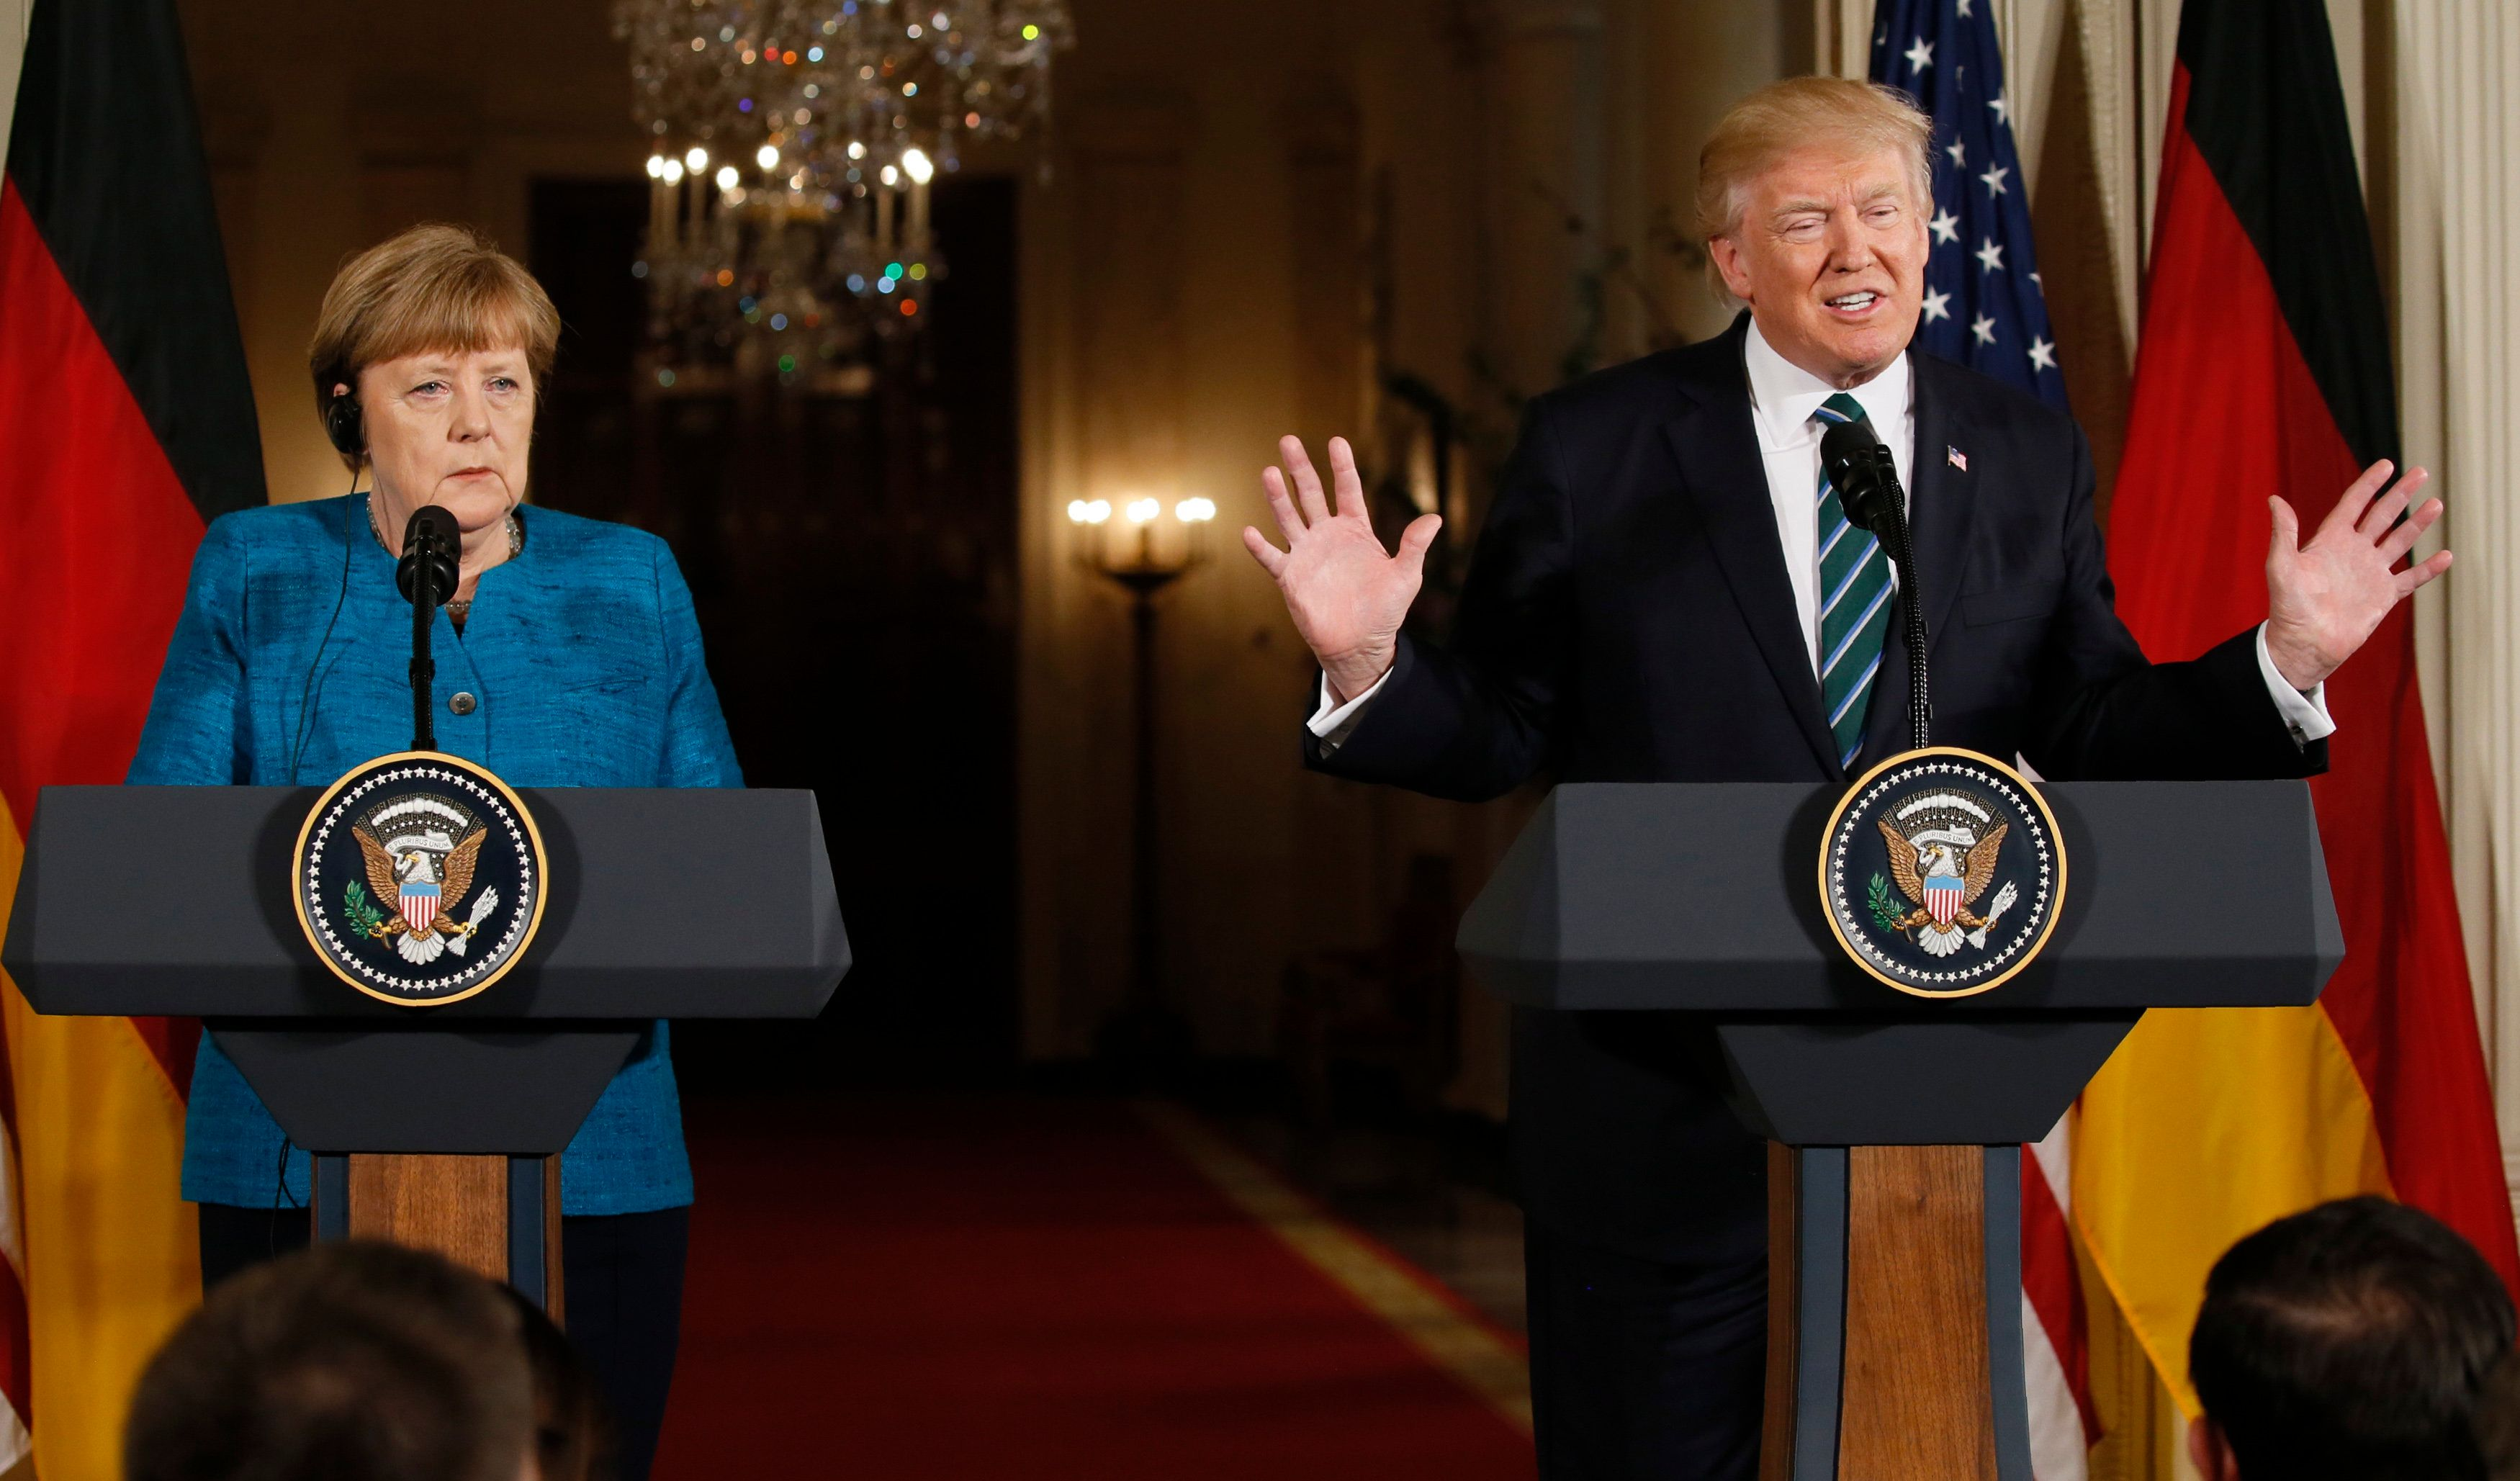 U.S. President Donald Trump speaks as German Chancellor Angela Merkel listens during their joint news conference in the East